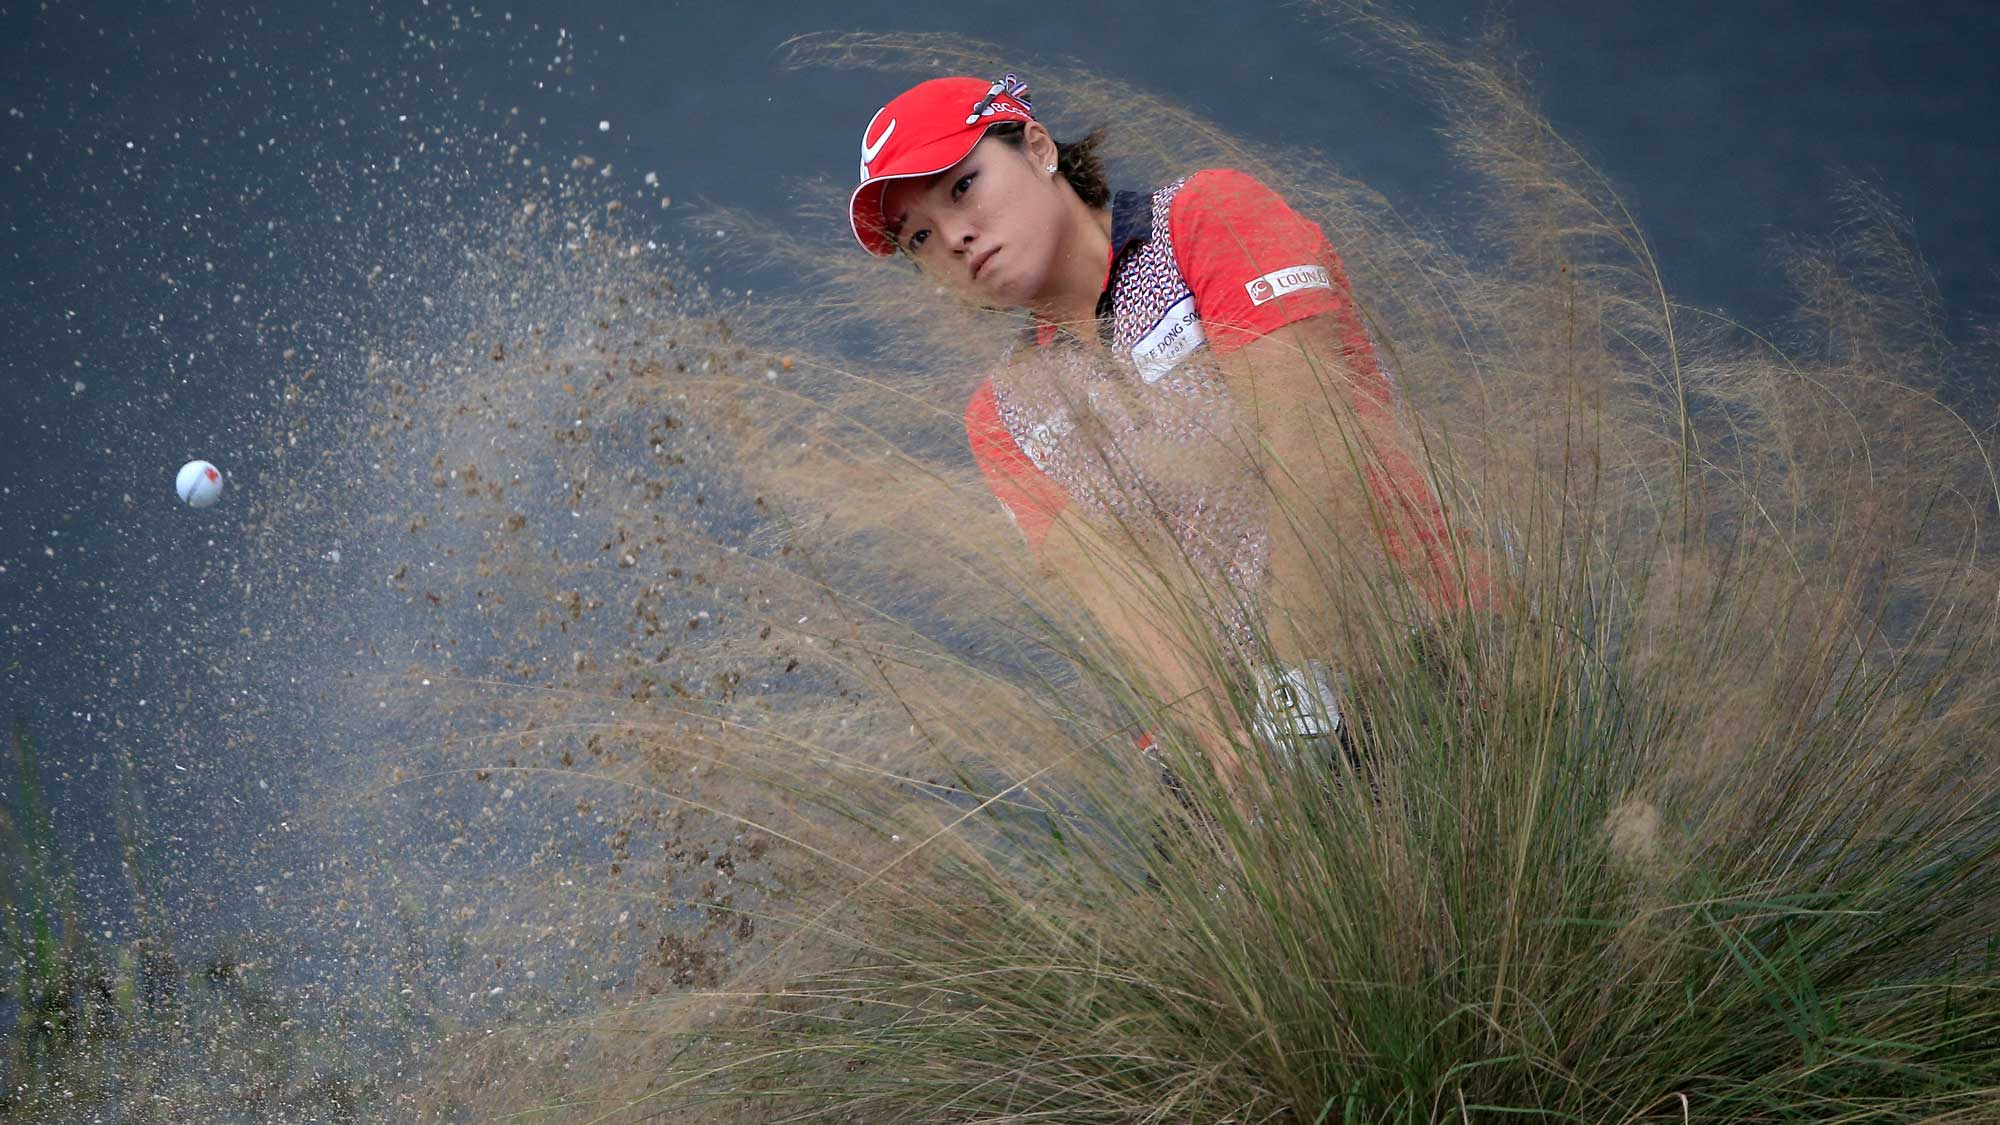 Ha Na Jang of South Korea plays a shot on the 18th hole during the third round of the CME Group Tour Championship at Tiburon Golf Club